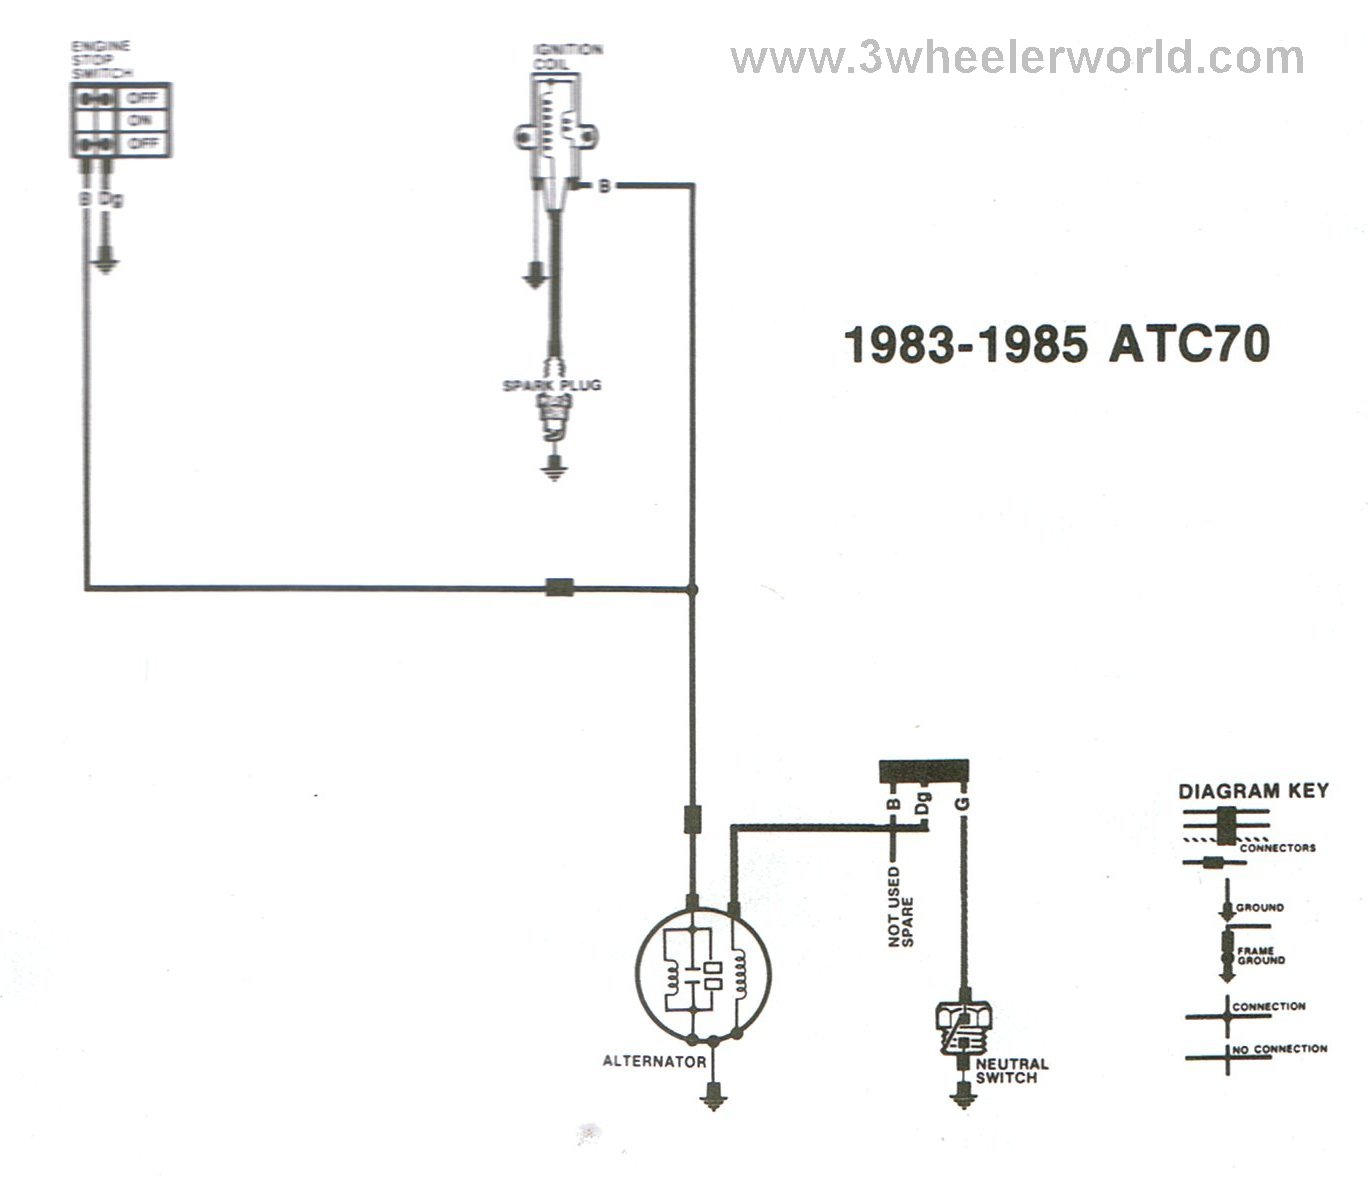 ATC70x83Thru85 3 wheeler world tech help honda wiring diagrams 1986 honda atc 250r wiring diagram at eliteediting.co